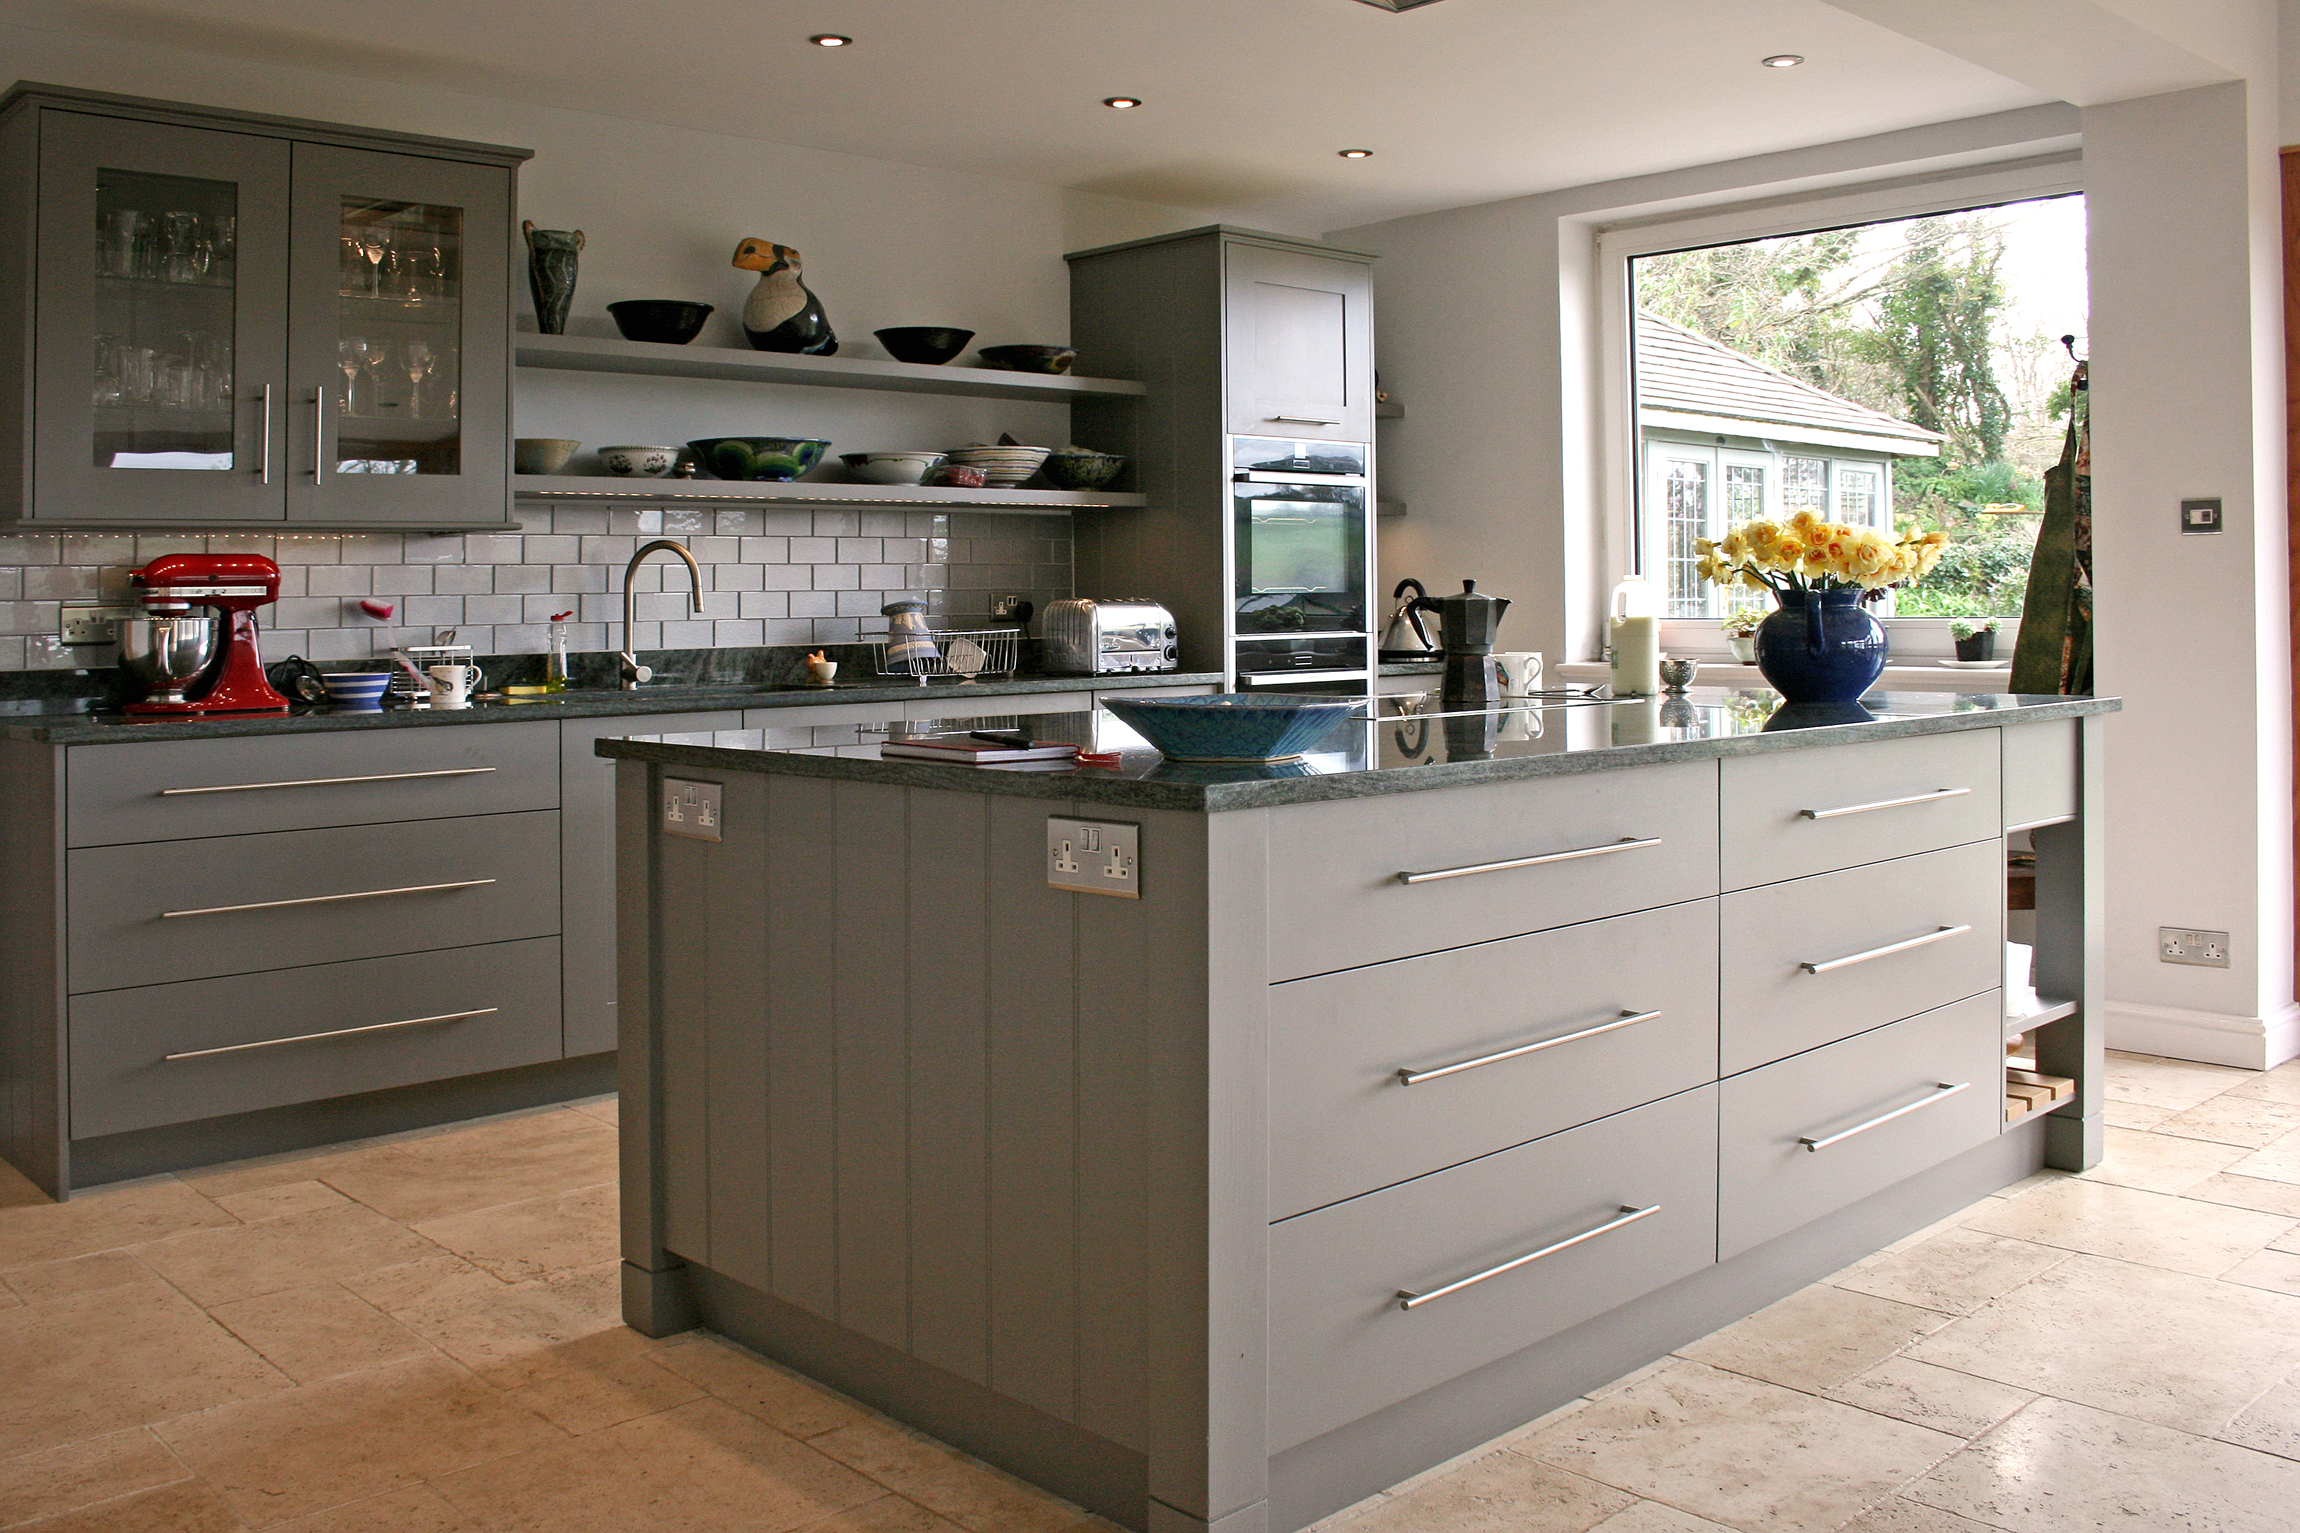 Kitchen Extension Oak And Glass Kitchen Extension Completed For Countryside Property